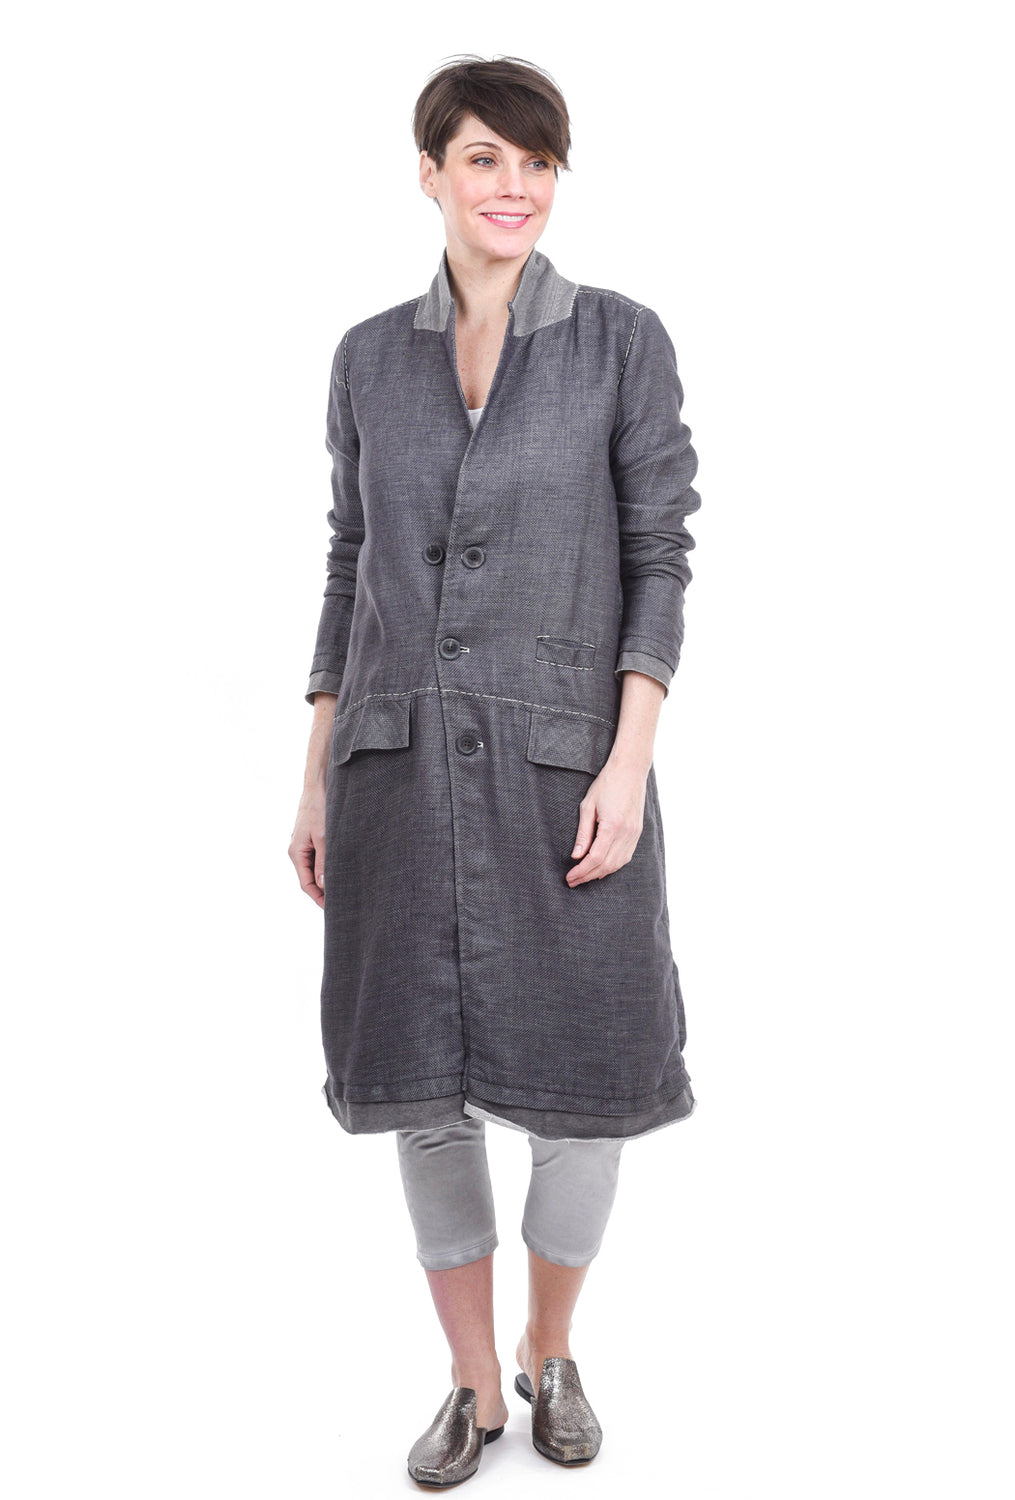 Umit Unal Stitched Details Topcoat, Gray